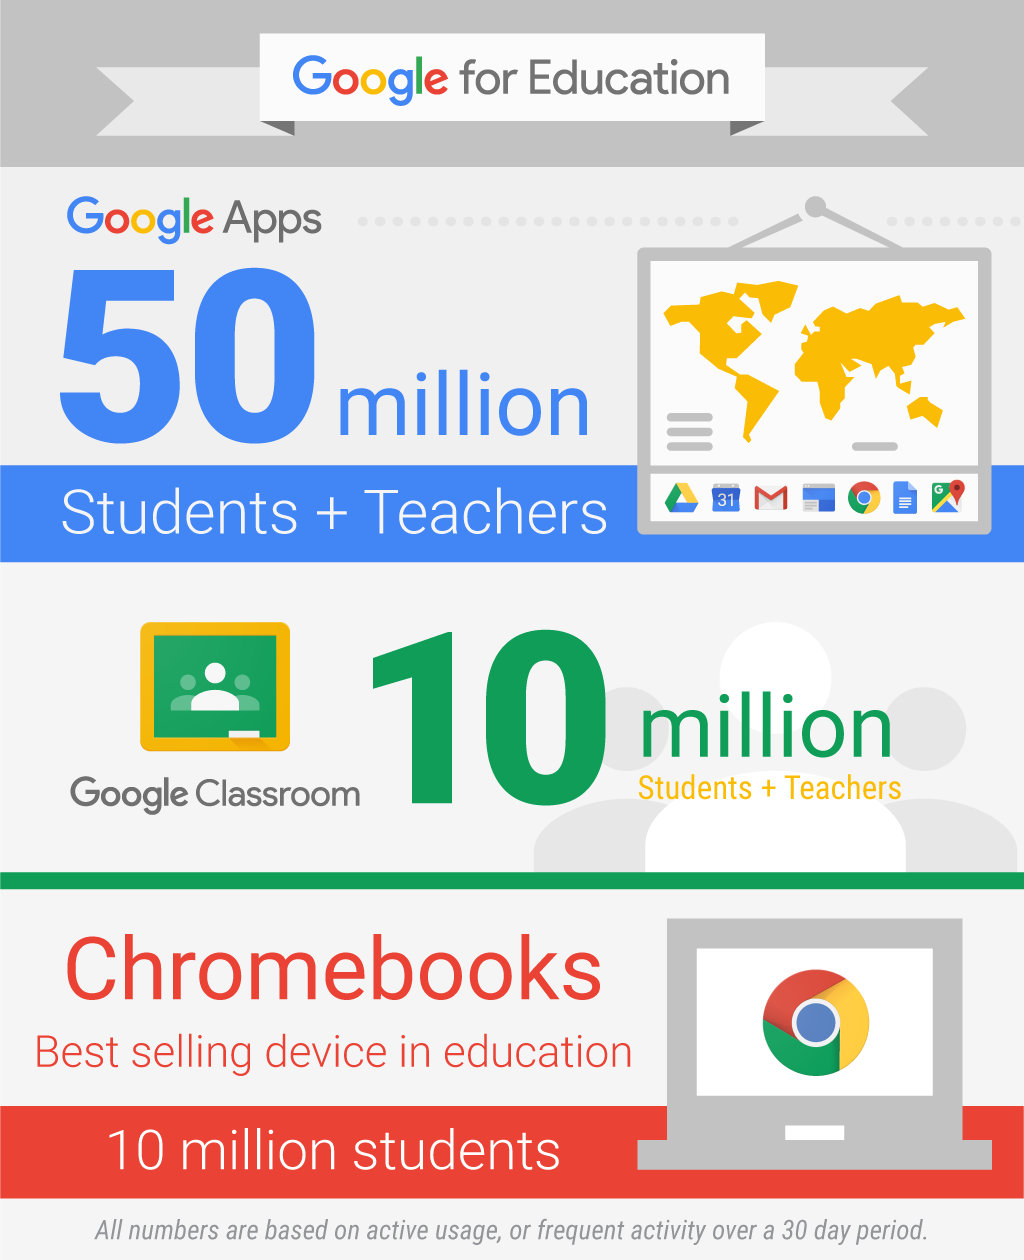 Official Google Cloud Blog: A new kind of Classroom for 10